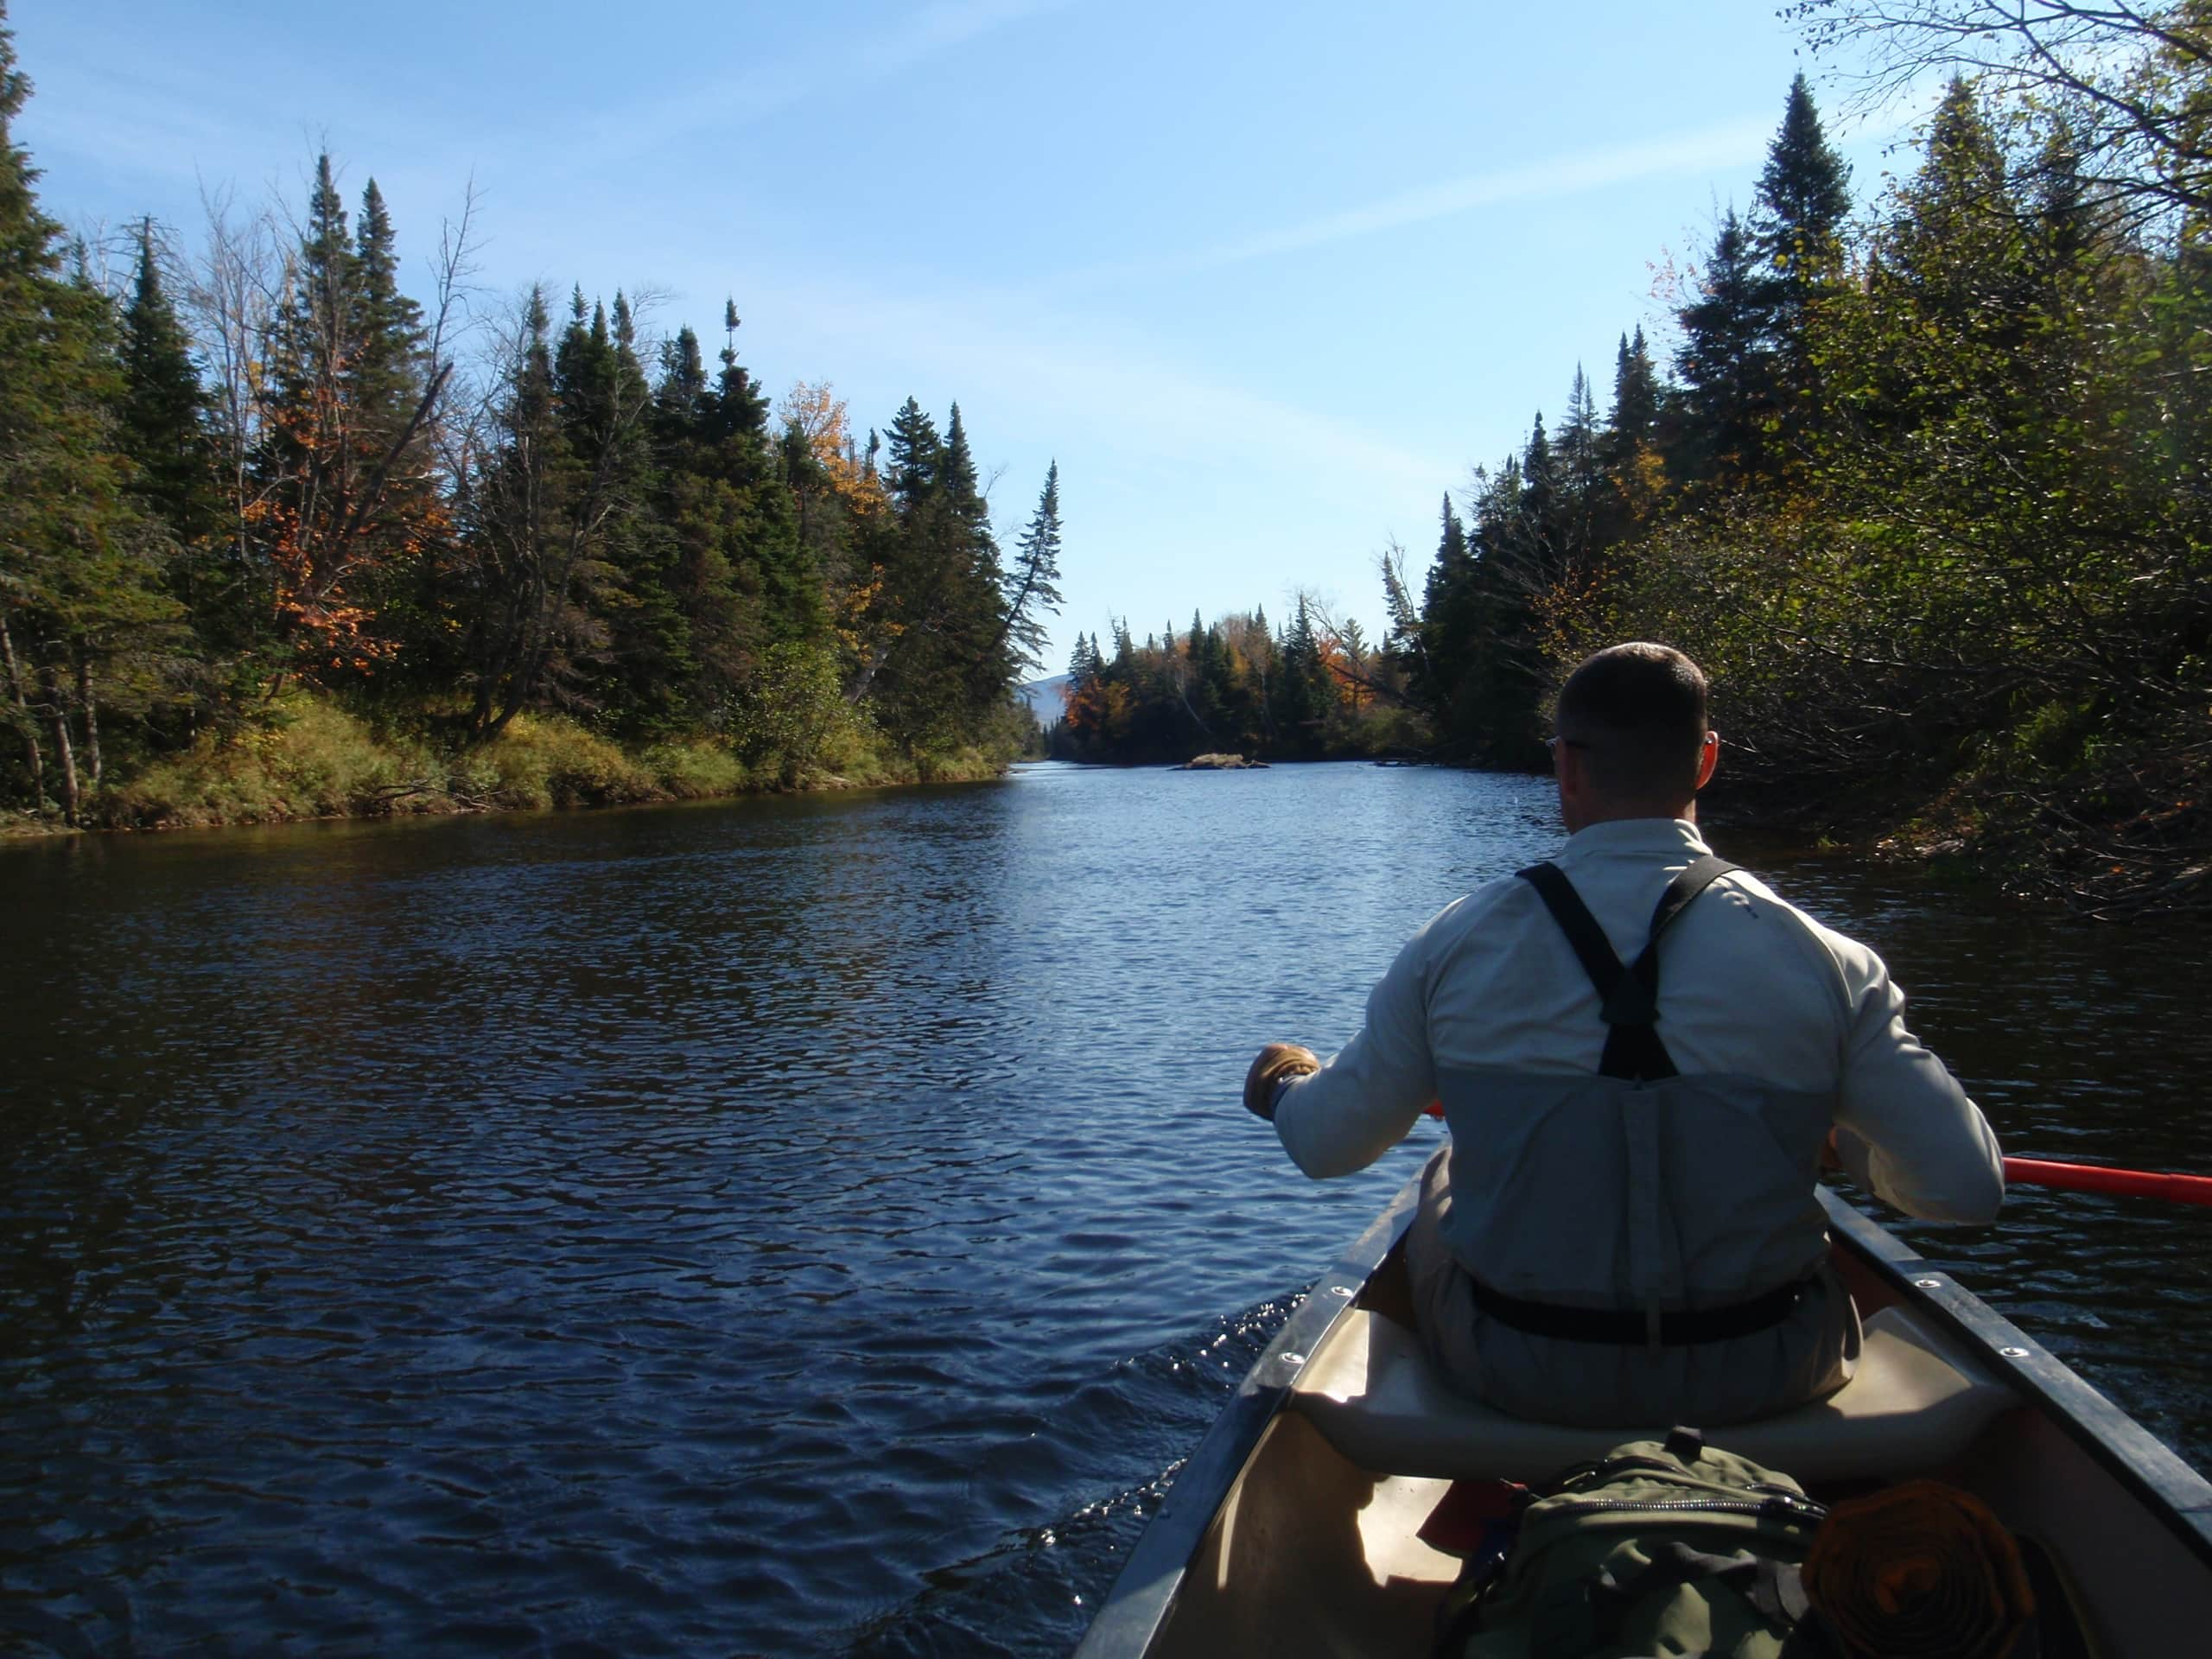 A Little Foggy From a Bottle of Old Crow the Night Before, Mother Nature Rewards us with Serene Conditions - Moosehead River ME